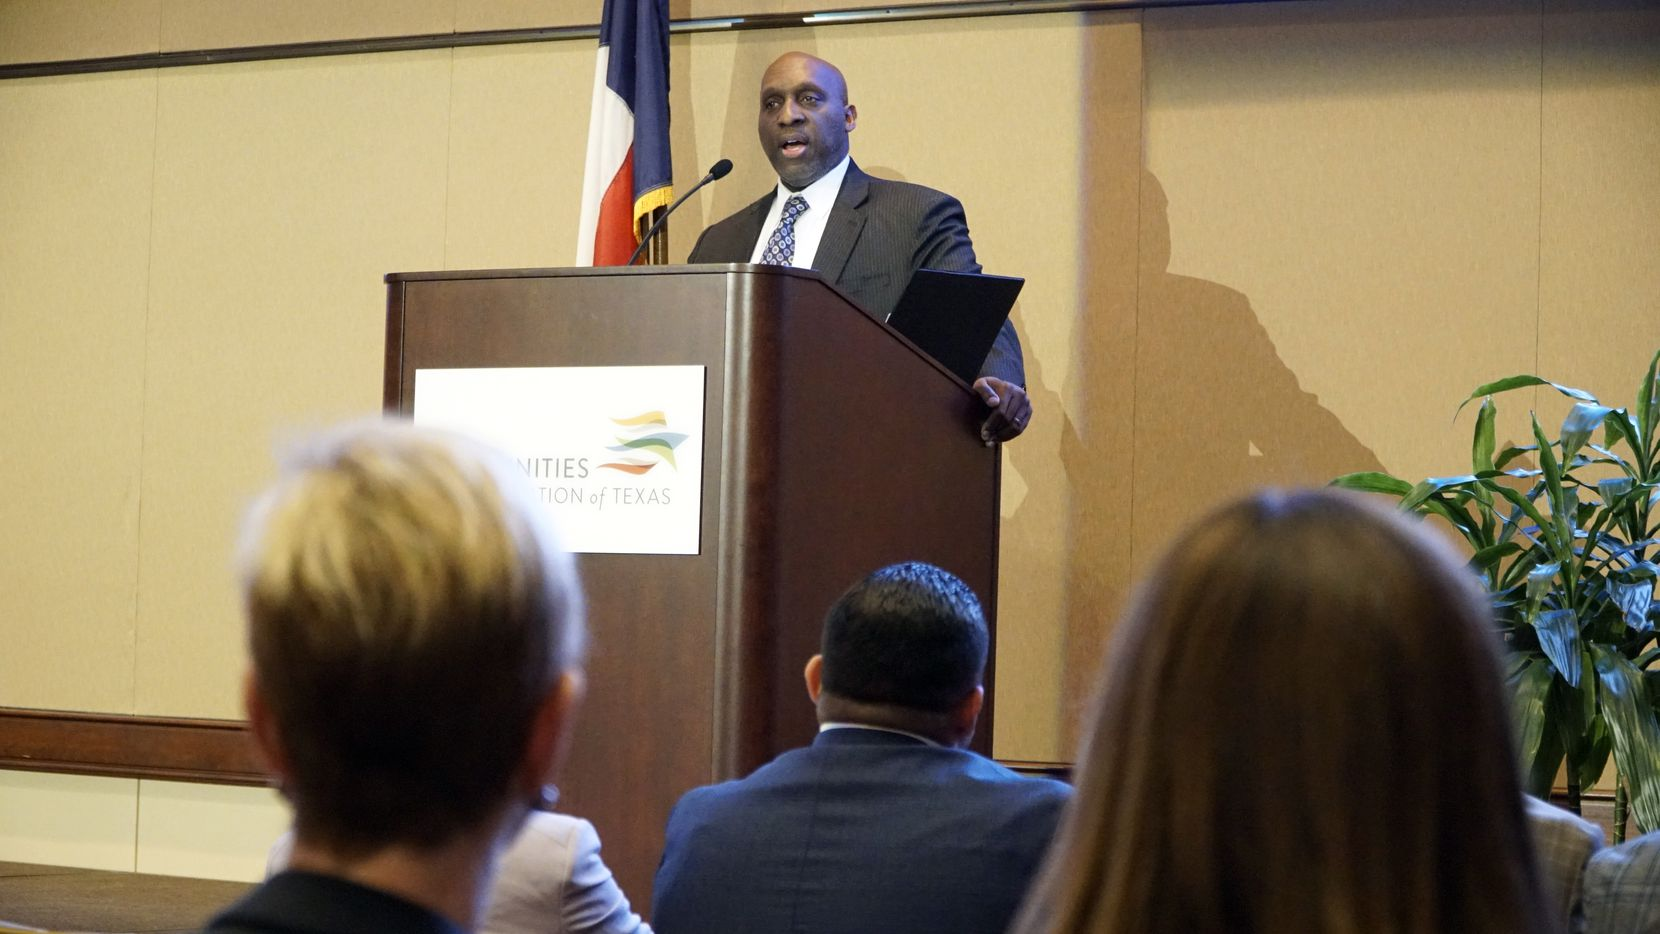 City Manager T.C. Broadnax speaks about the city's equity indicators project at the Communities Foundation of Texas in Dallas, Texas on Friday, October 28, 2019.  (Lawrence Jenkins/Special Contributor)